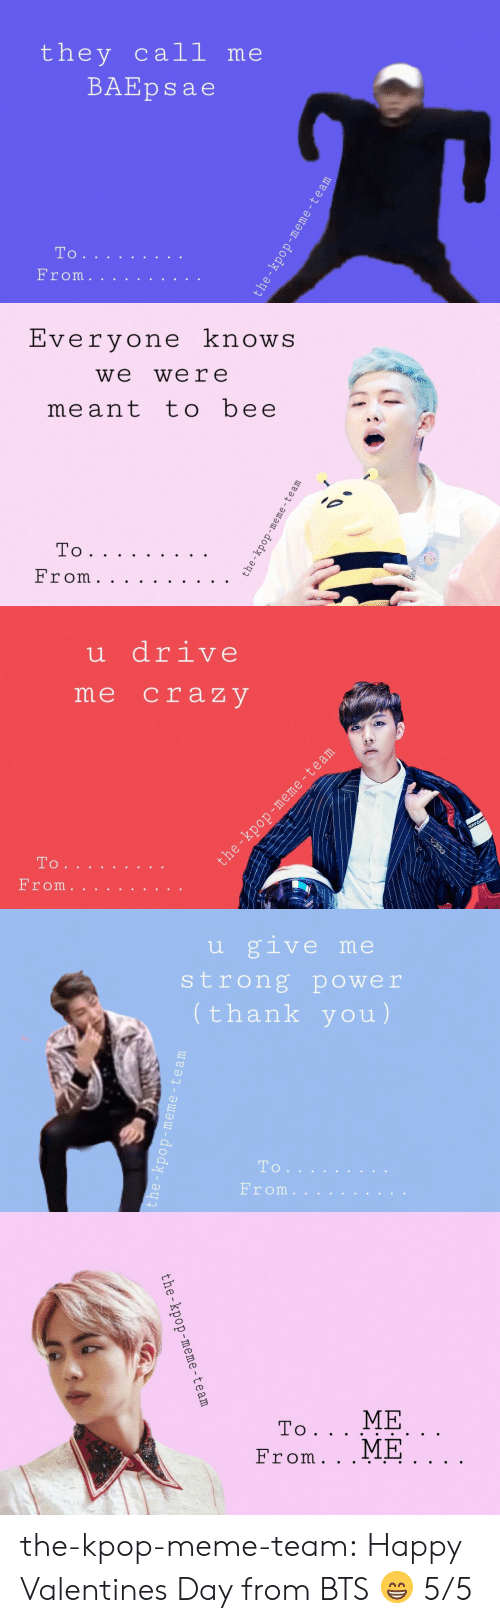 Baepsae: they call me  BAEpsae  To   Evervone knowS  we were  meant tobee   u drive  me craz V  то .   u give me  strong power  thank you)  To  From.   the-kpop-meme-team the-kpop-meme-team:  Happy Valentines Day from BTS 😁 5/5